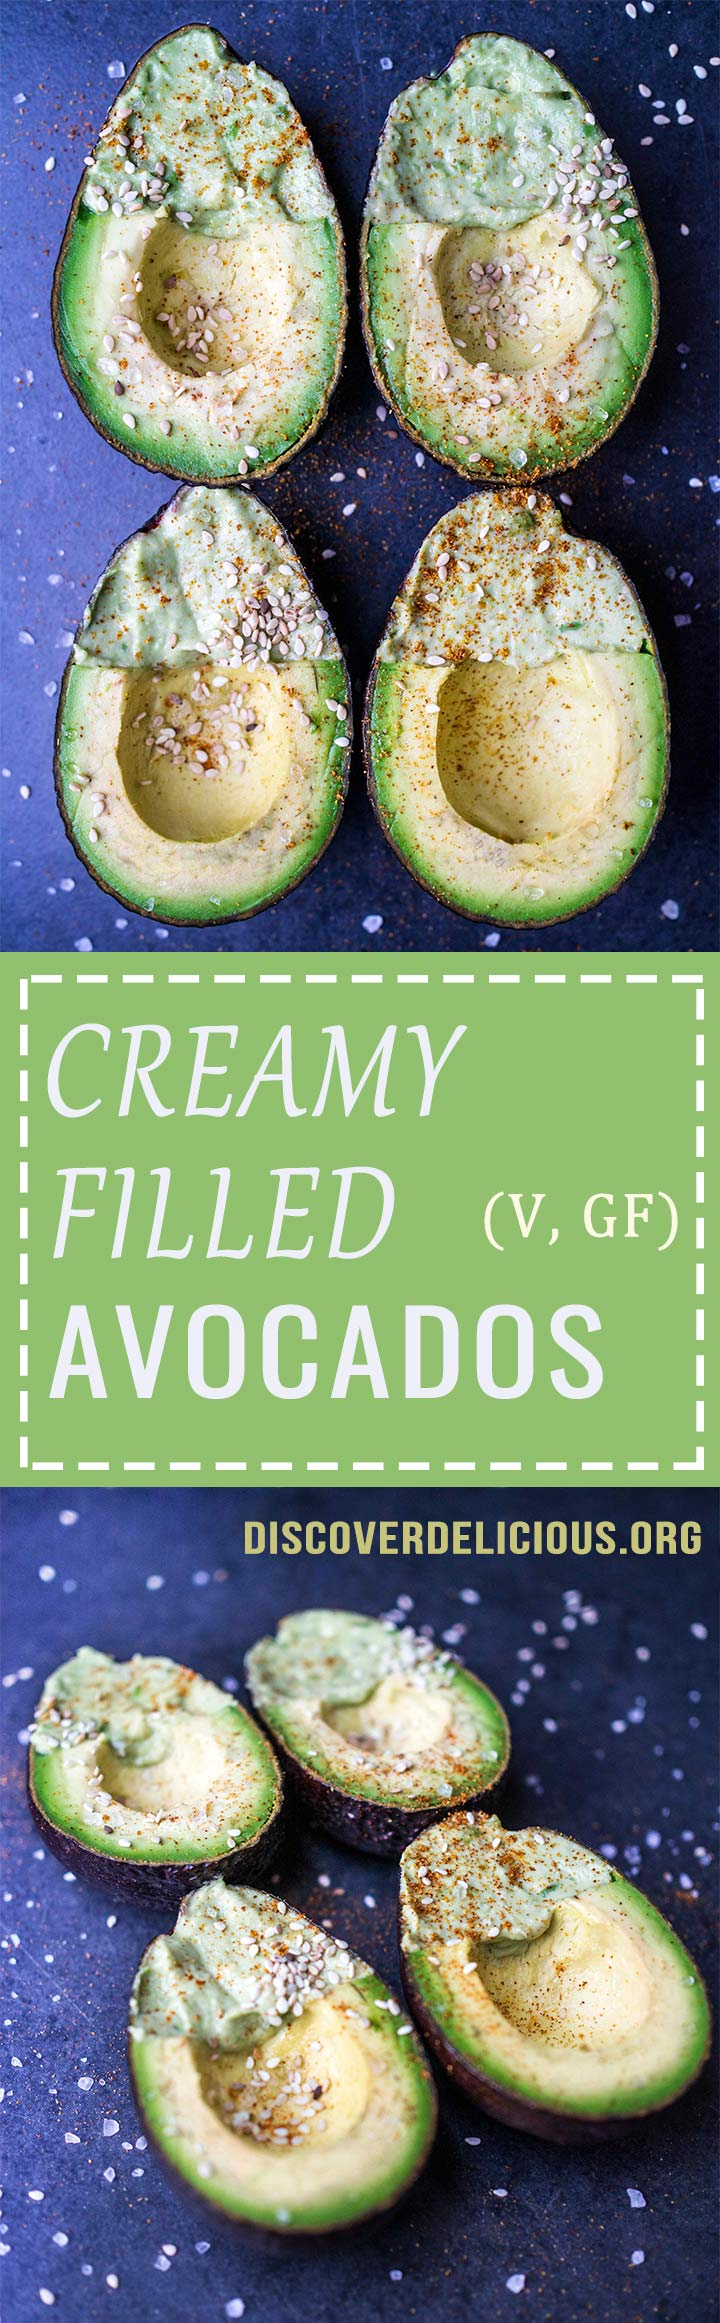 Creamy Filled Avocado | Discover Delicious | www.discoverdelicious.org | Vegan Food Blog